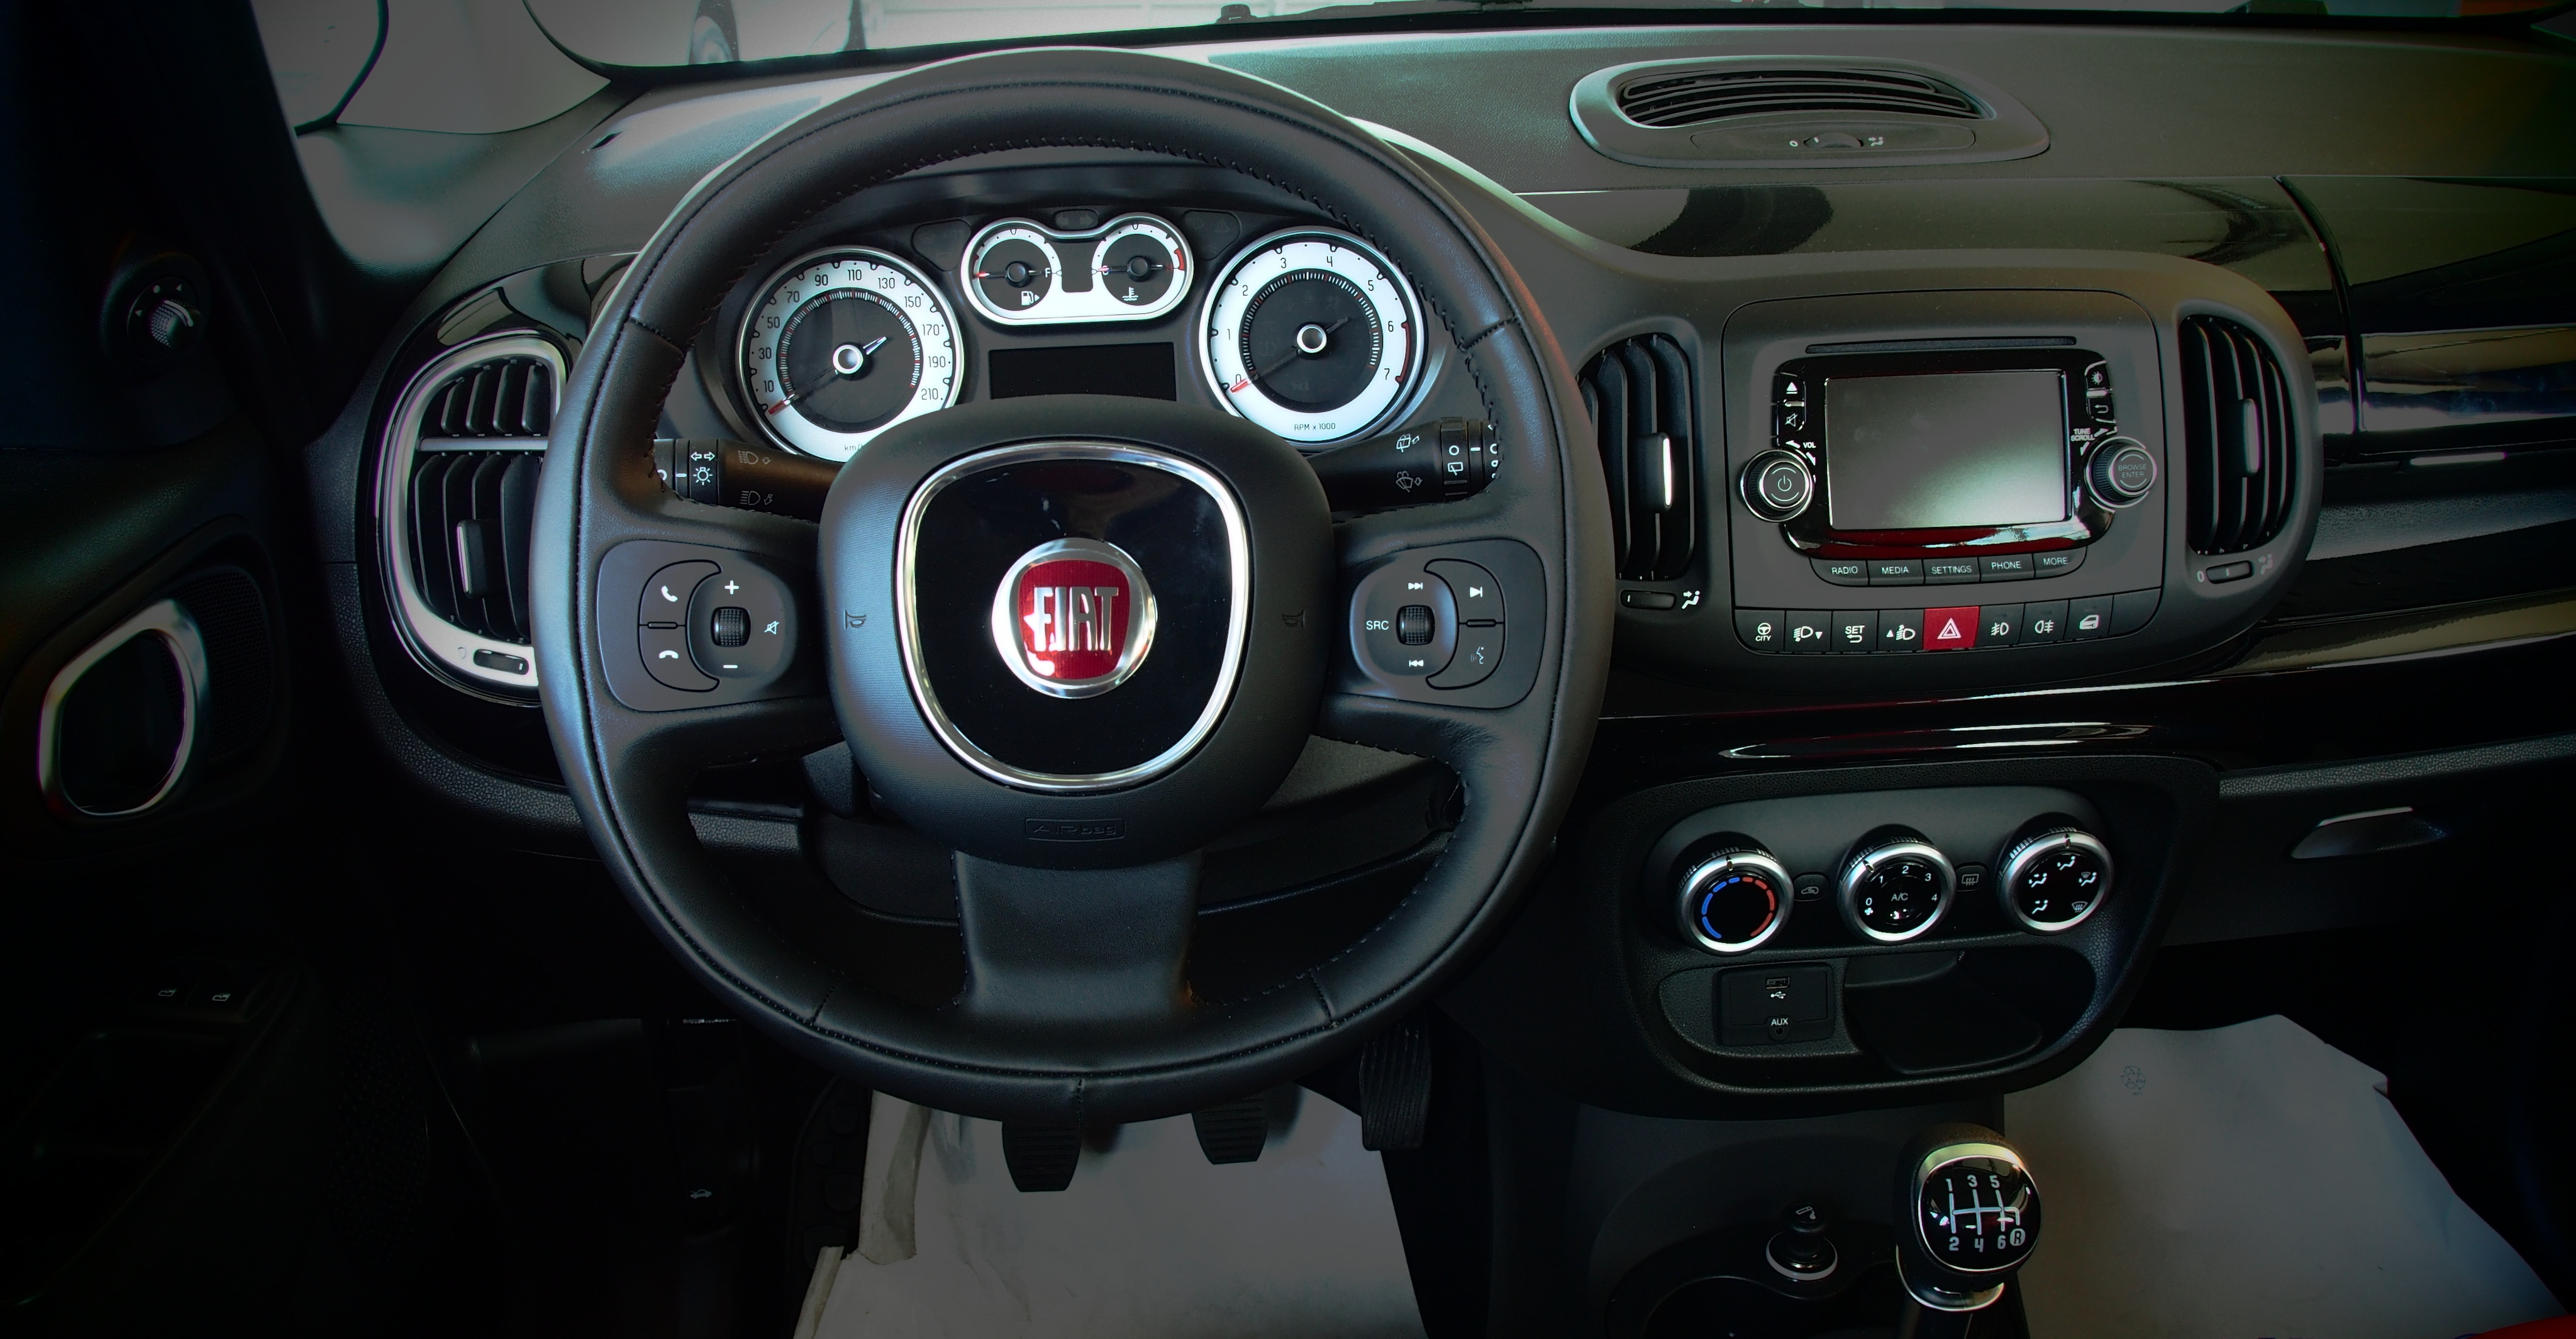 Good Quality Speaker Wire For Bi Wiring B W 703 additionally Avantgarde Bordeaux in addition Fiat 500x 2015 also Allpar Dodge Journey likewise The Personal Car. on fiat 500 fuel economy